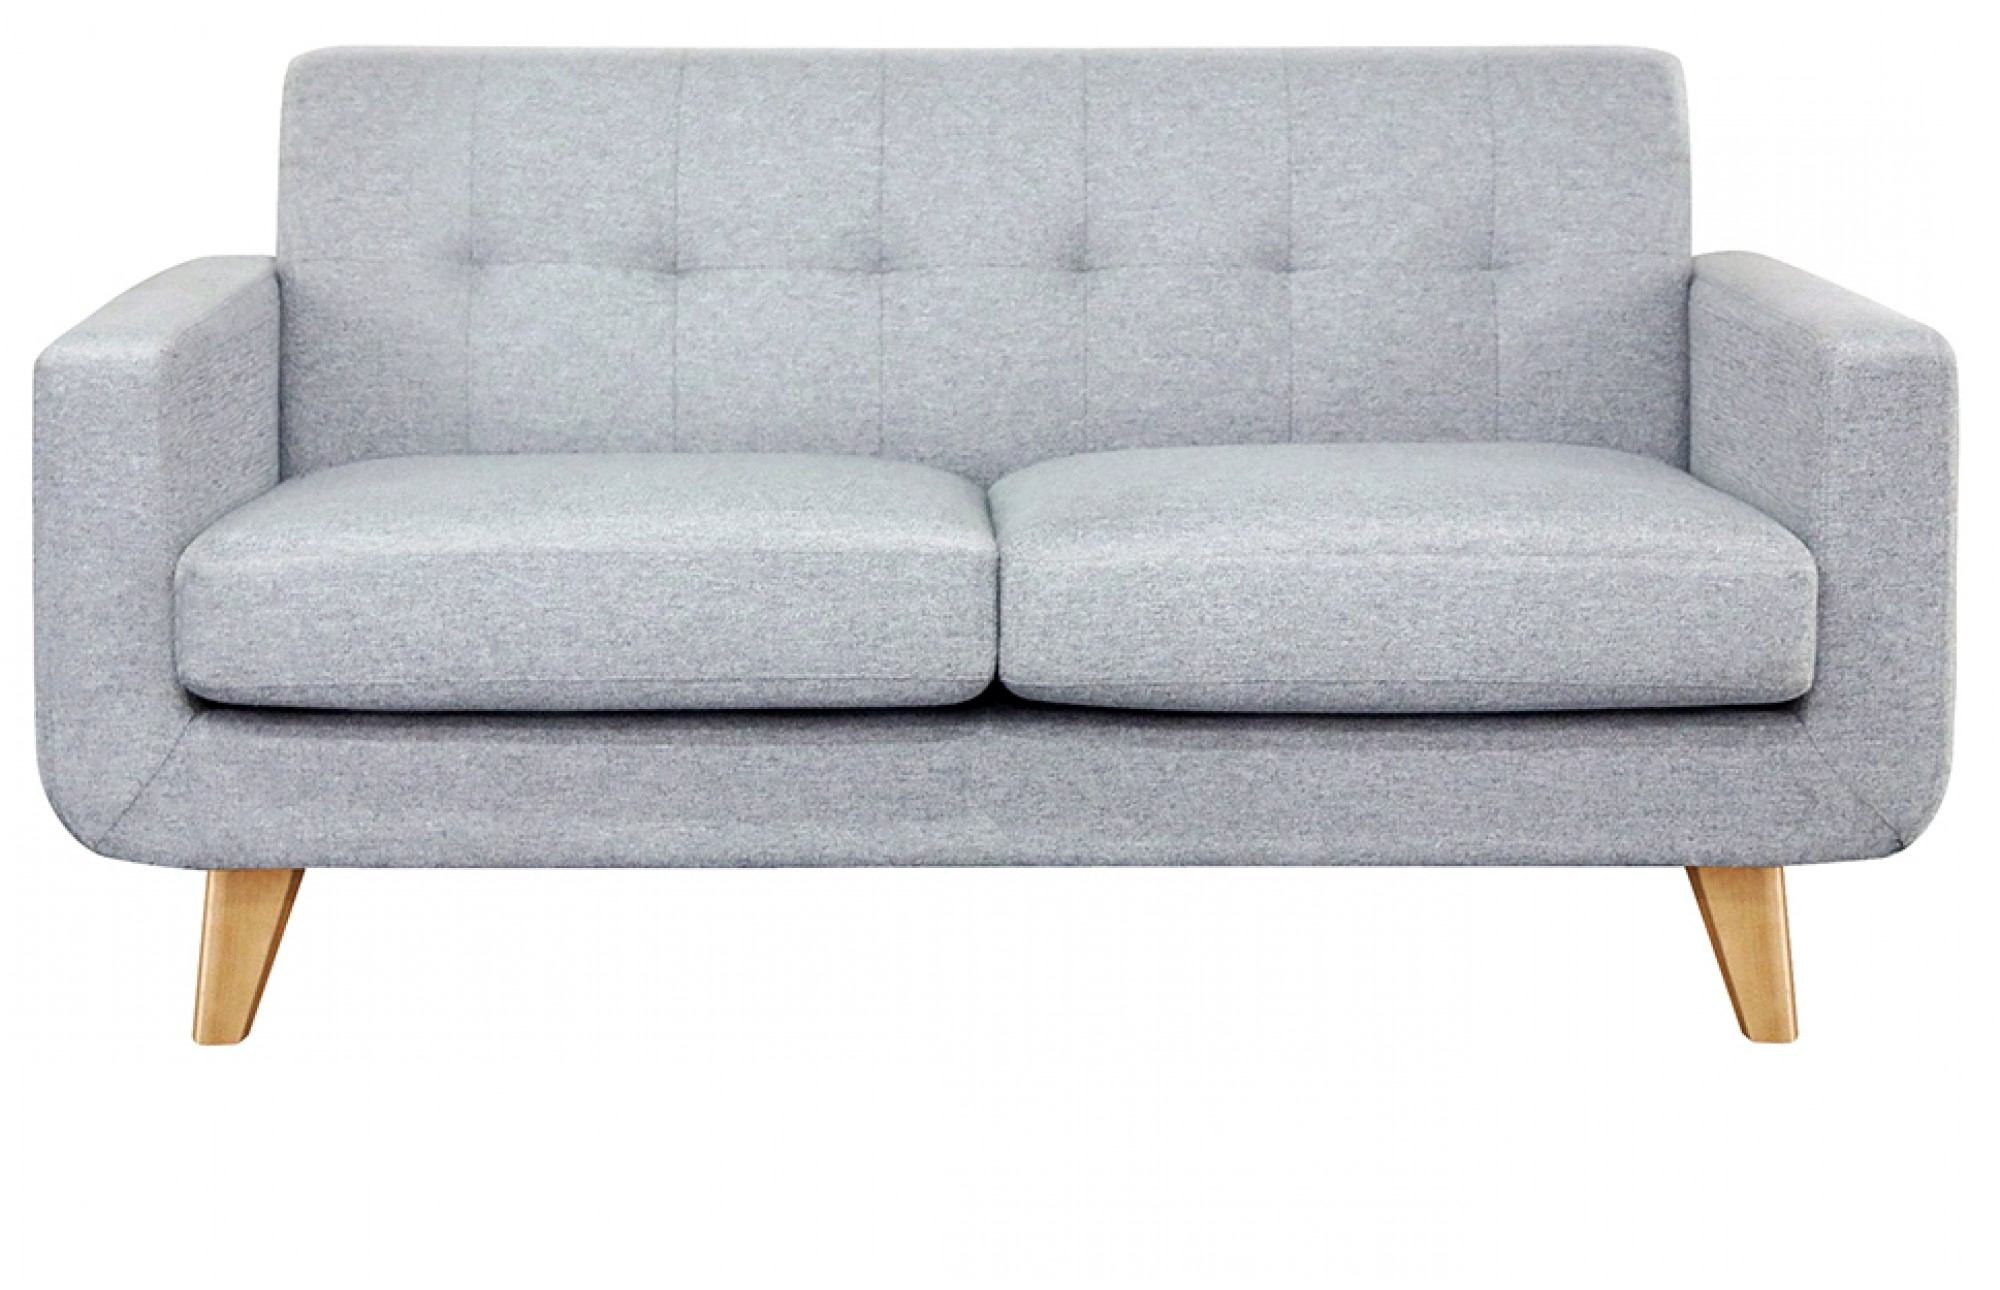 Widely Used Two Seater Sofas For Grey 2 Seater Sofa – Oak Legs  Lounge Furniture – Out & Out Original (View 20 of 20)